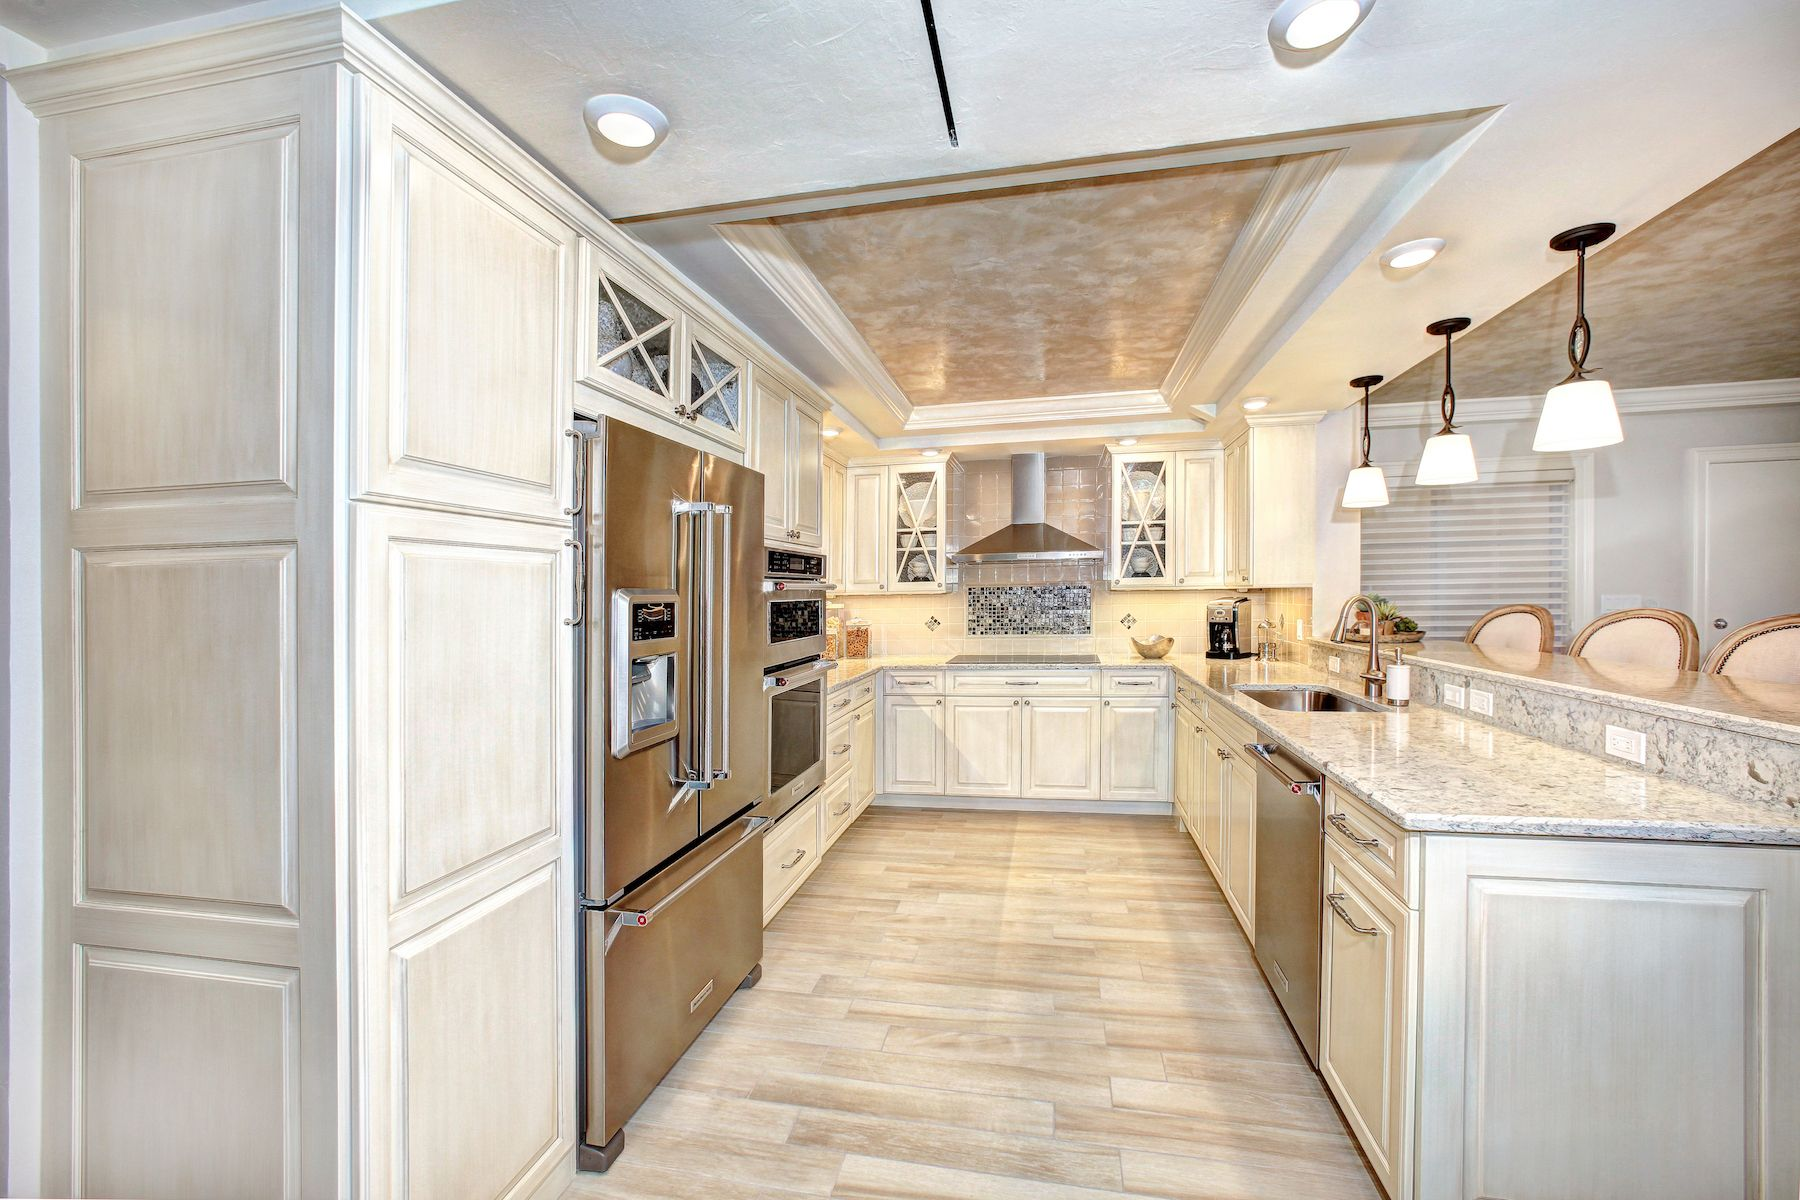 Woodharbor Cabinetry in Coastal White with Latte brushed ...